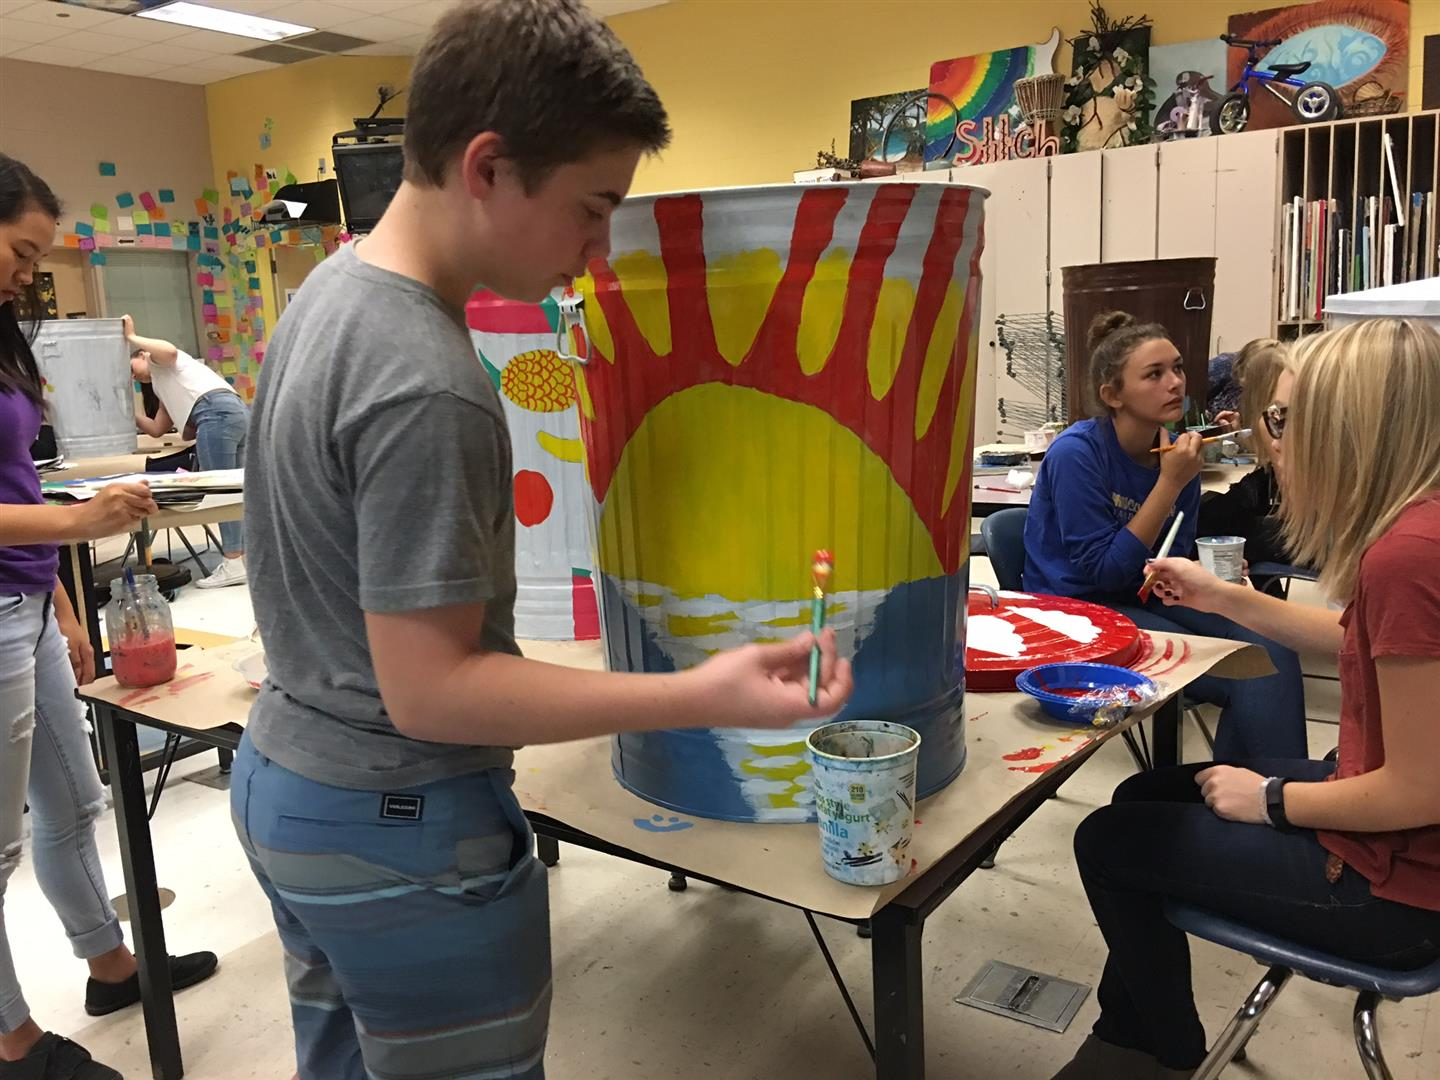 Young Man Painting Trashcan With Other Students